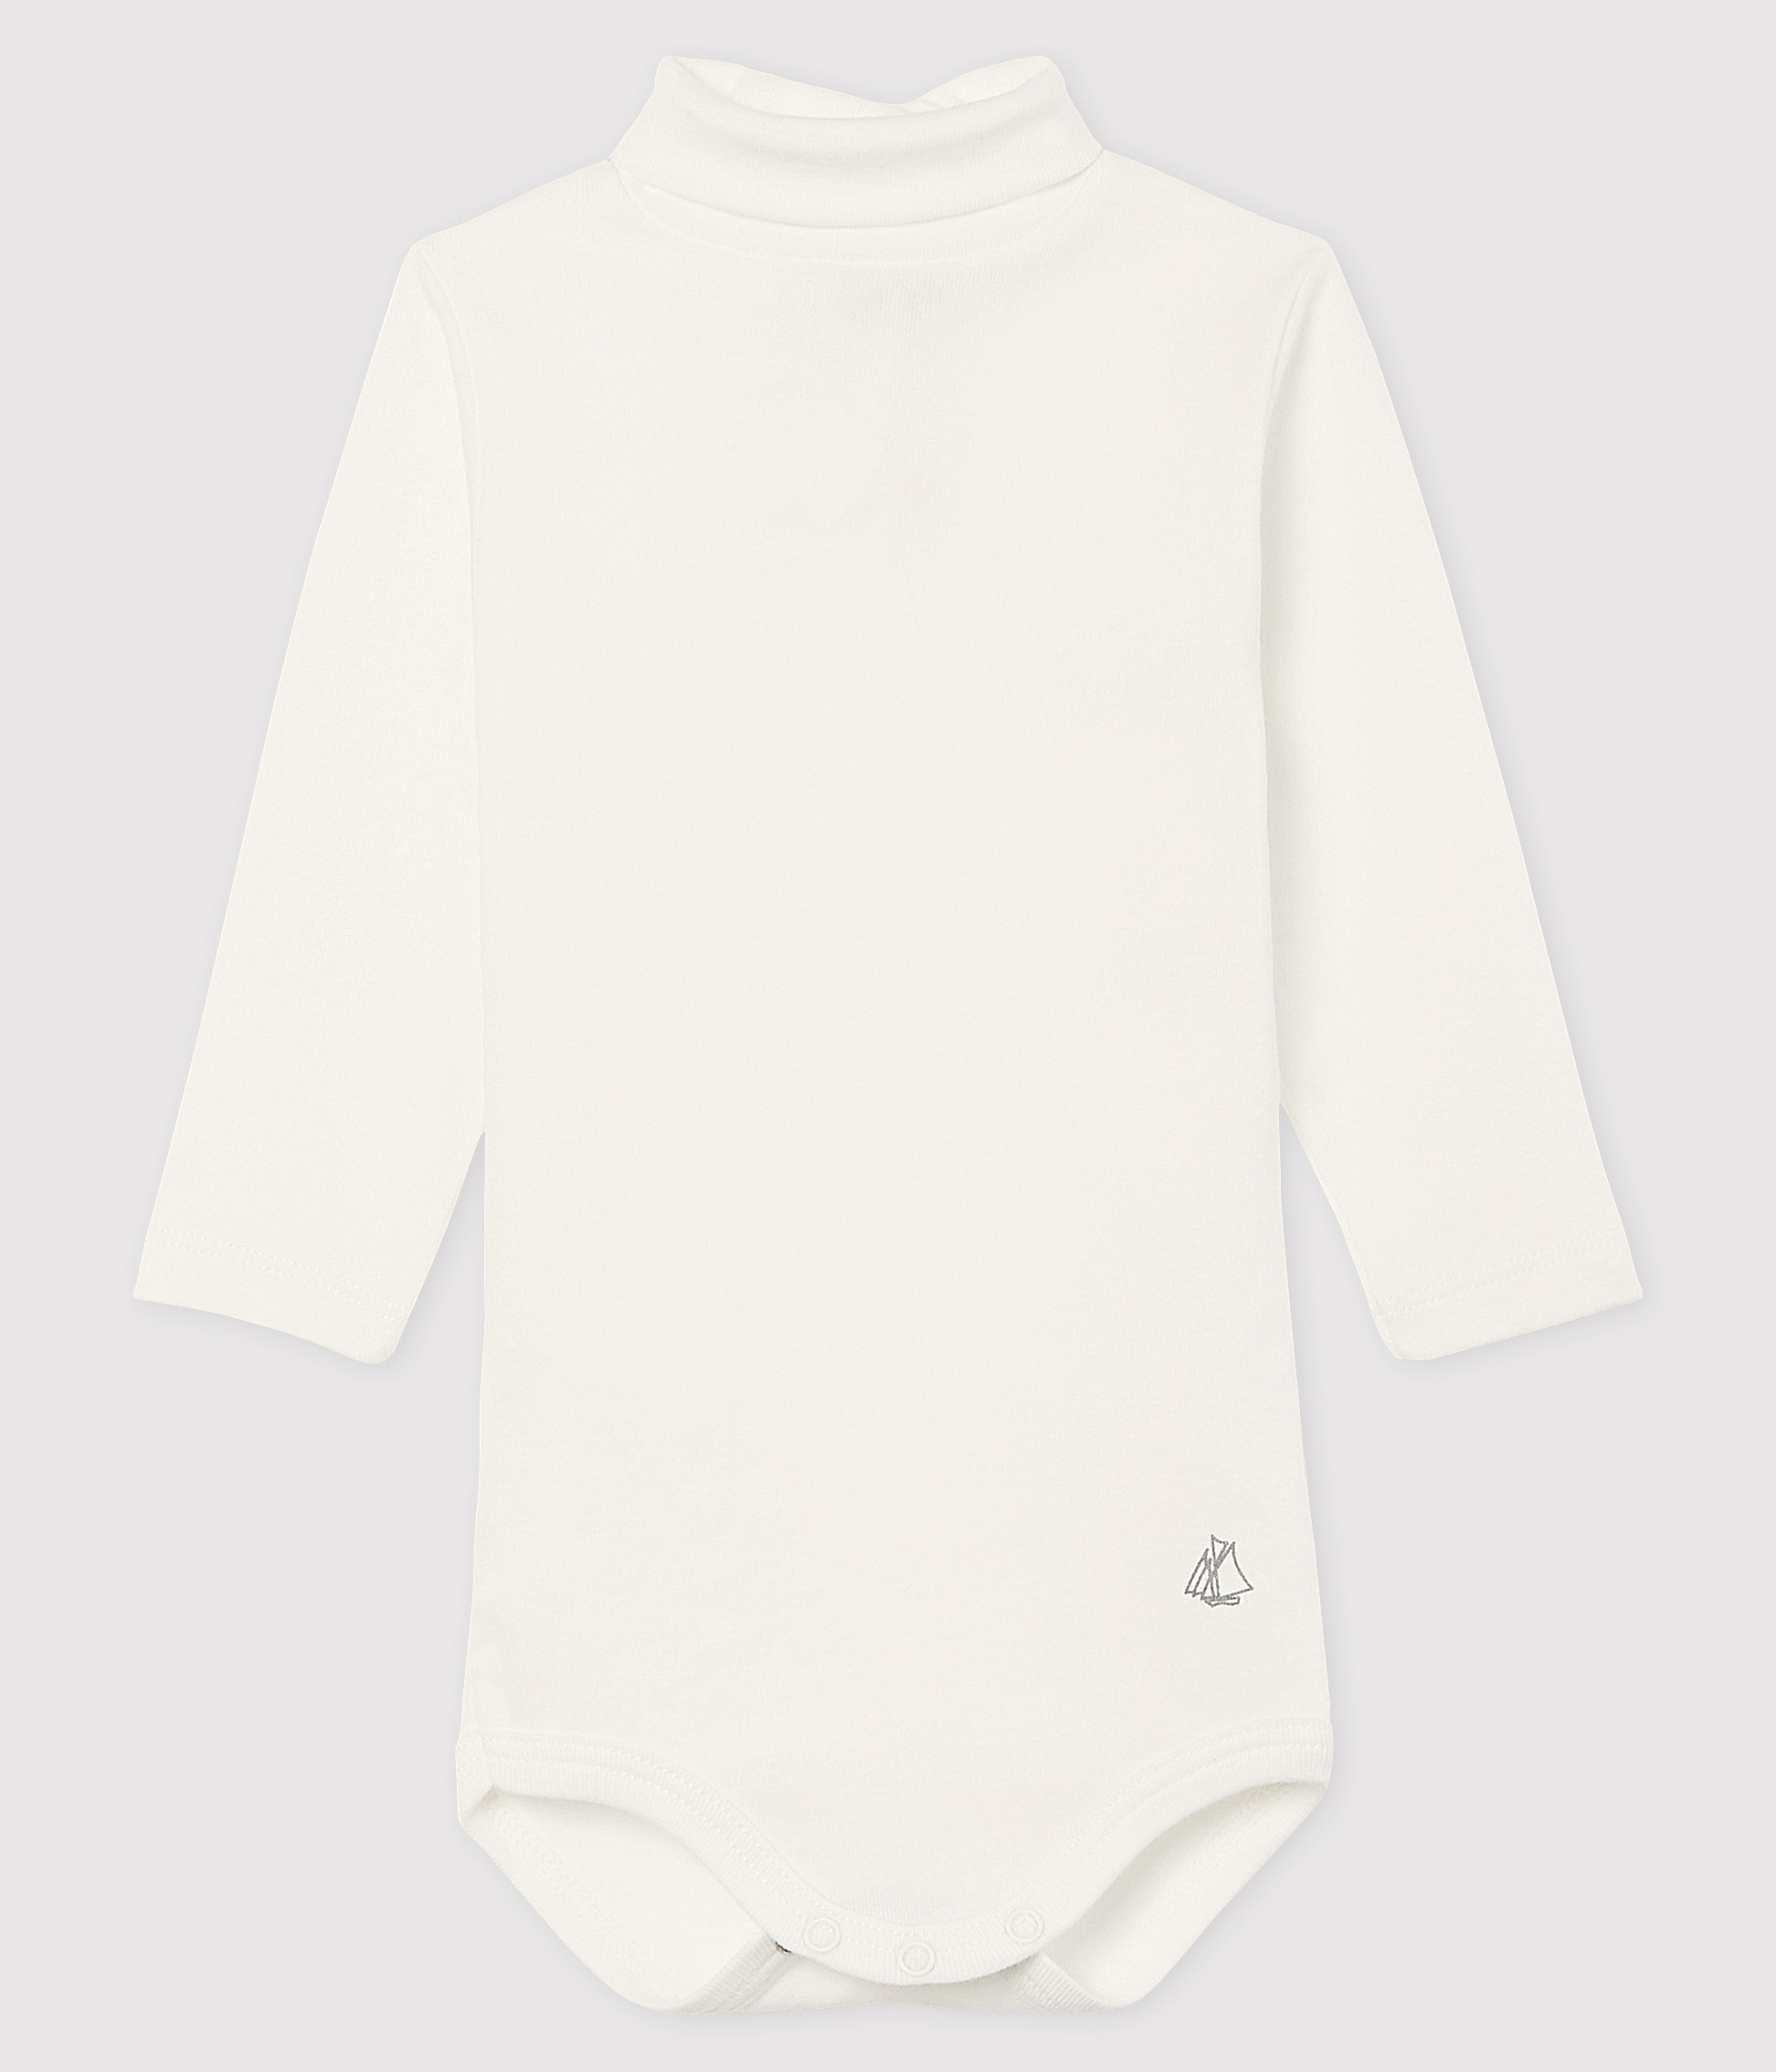 Baby's long-sleeved roll-neck bodysuit